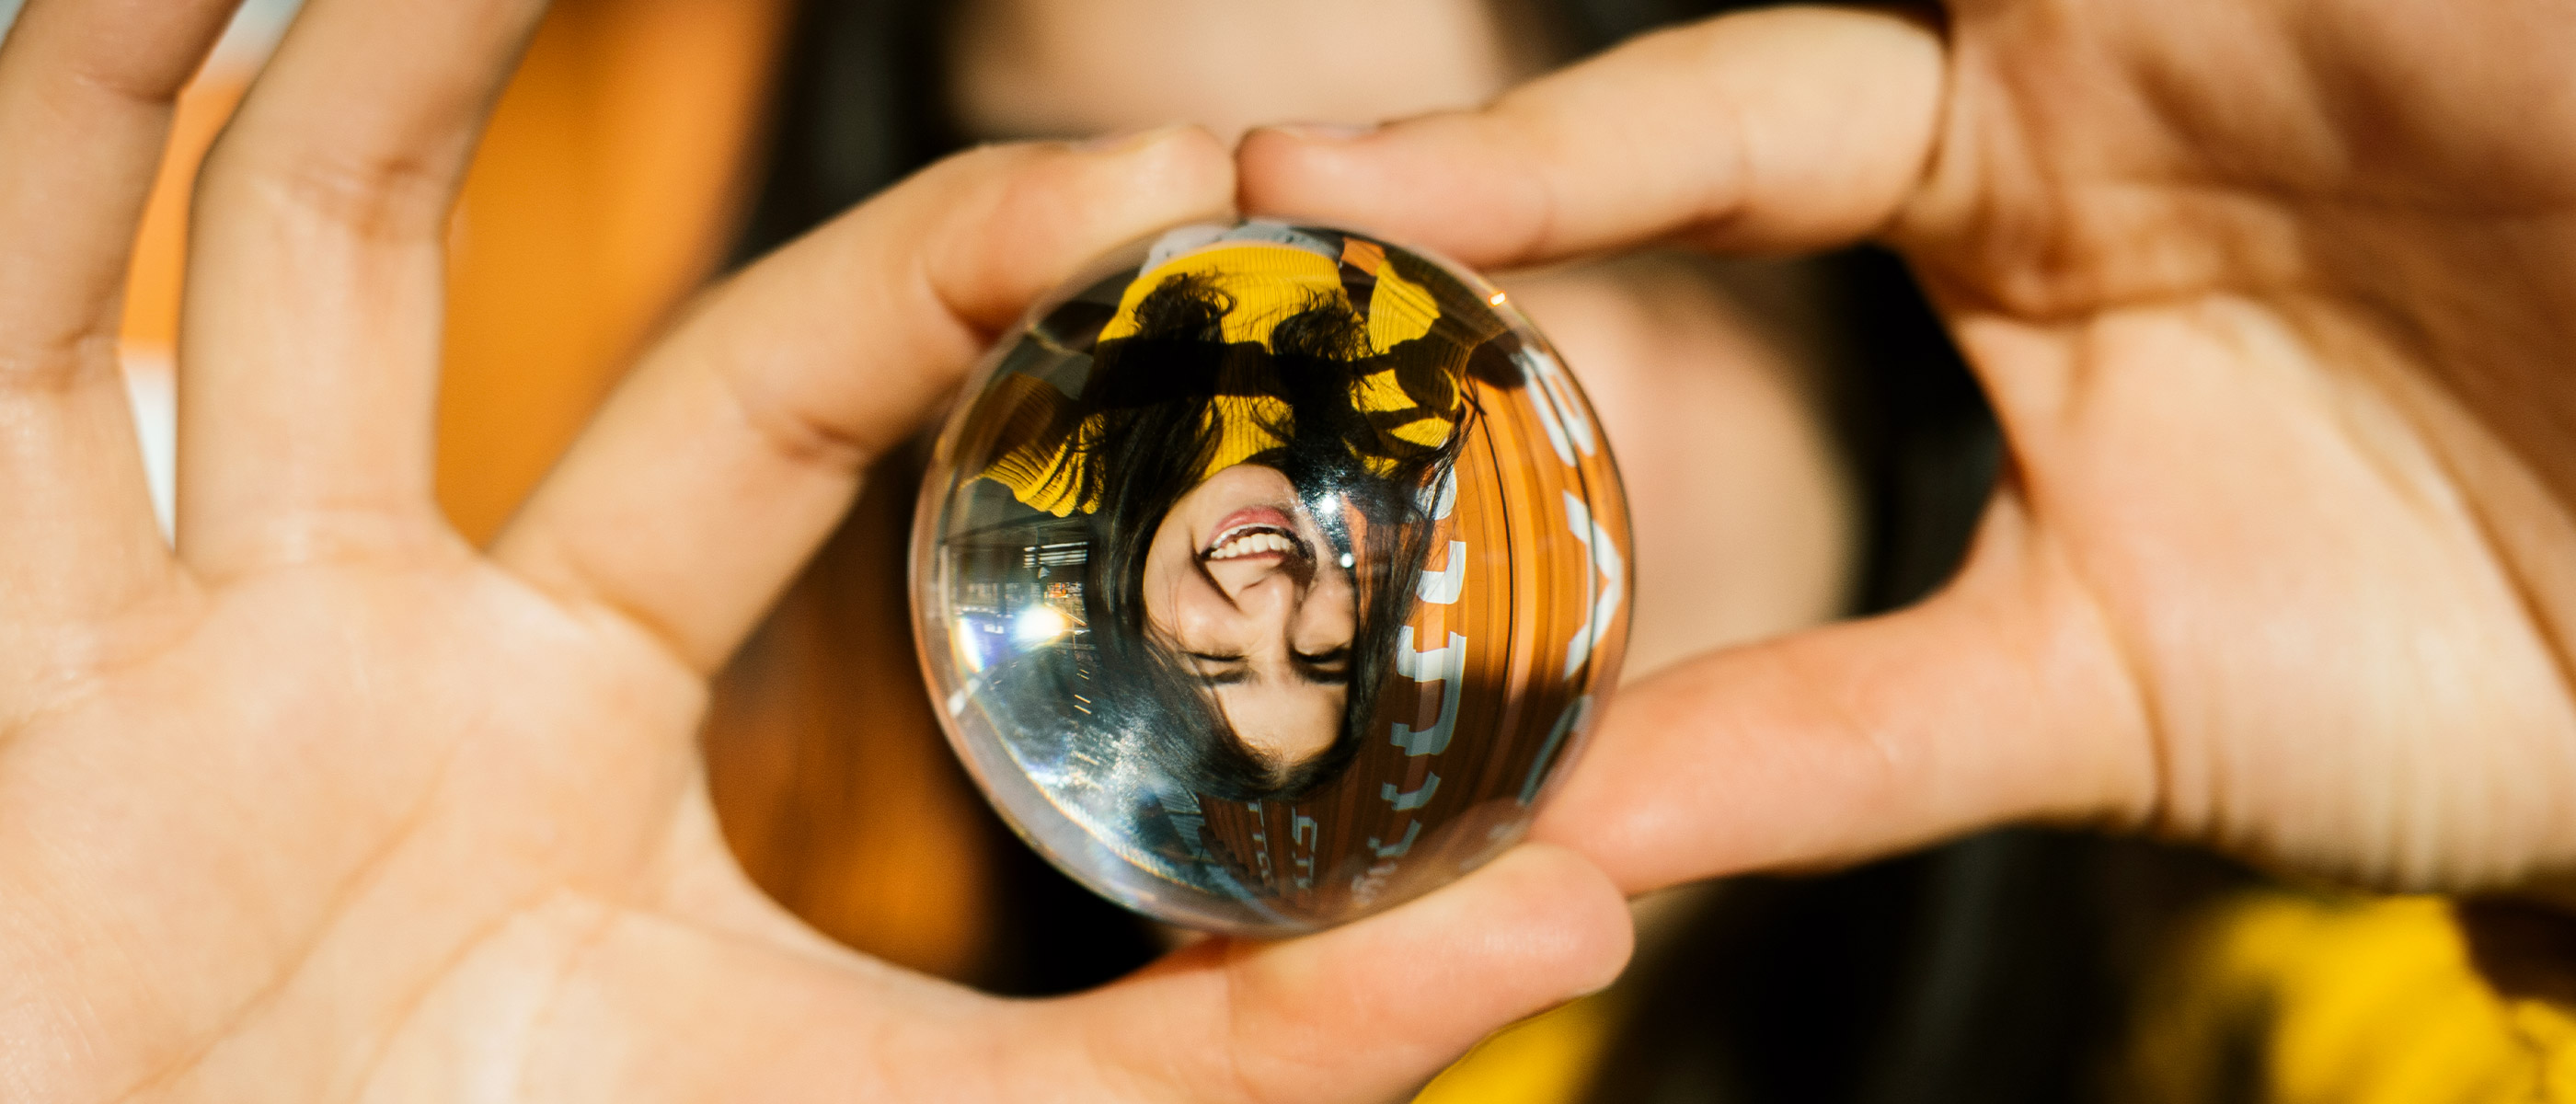 photo of a girl holding a lens ball with her portrait upside down inside the ball, taken with the NIKKOR Z 40mm f/2